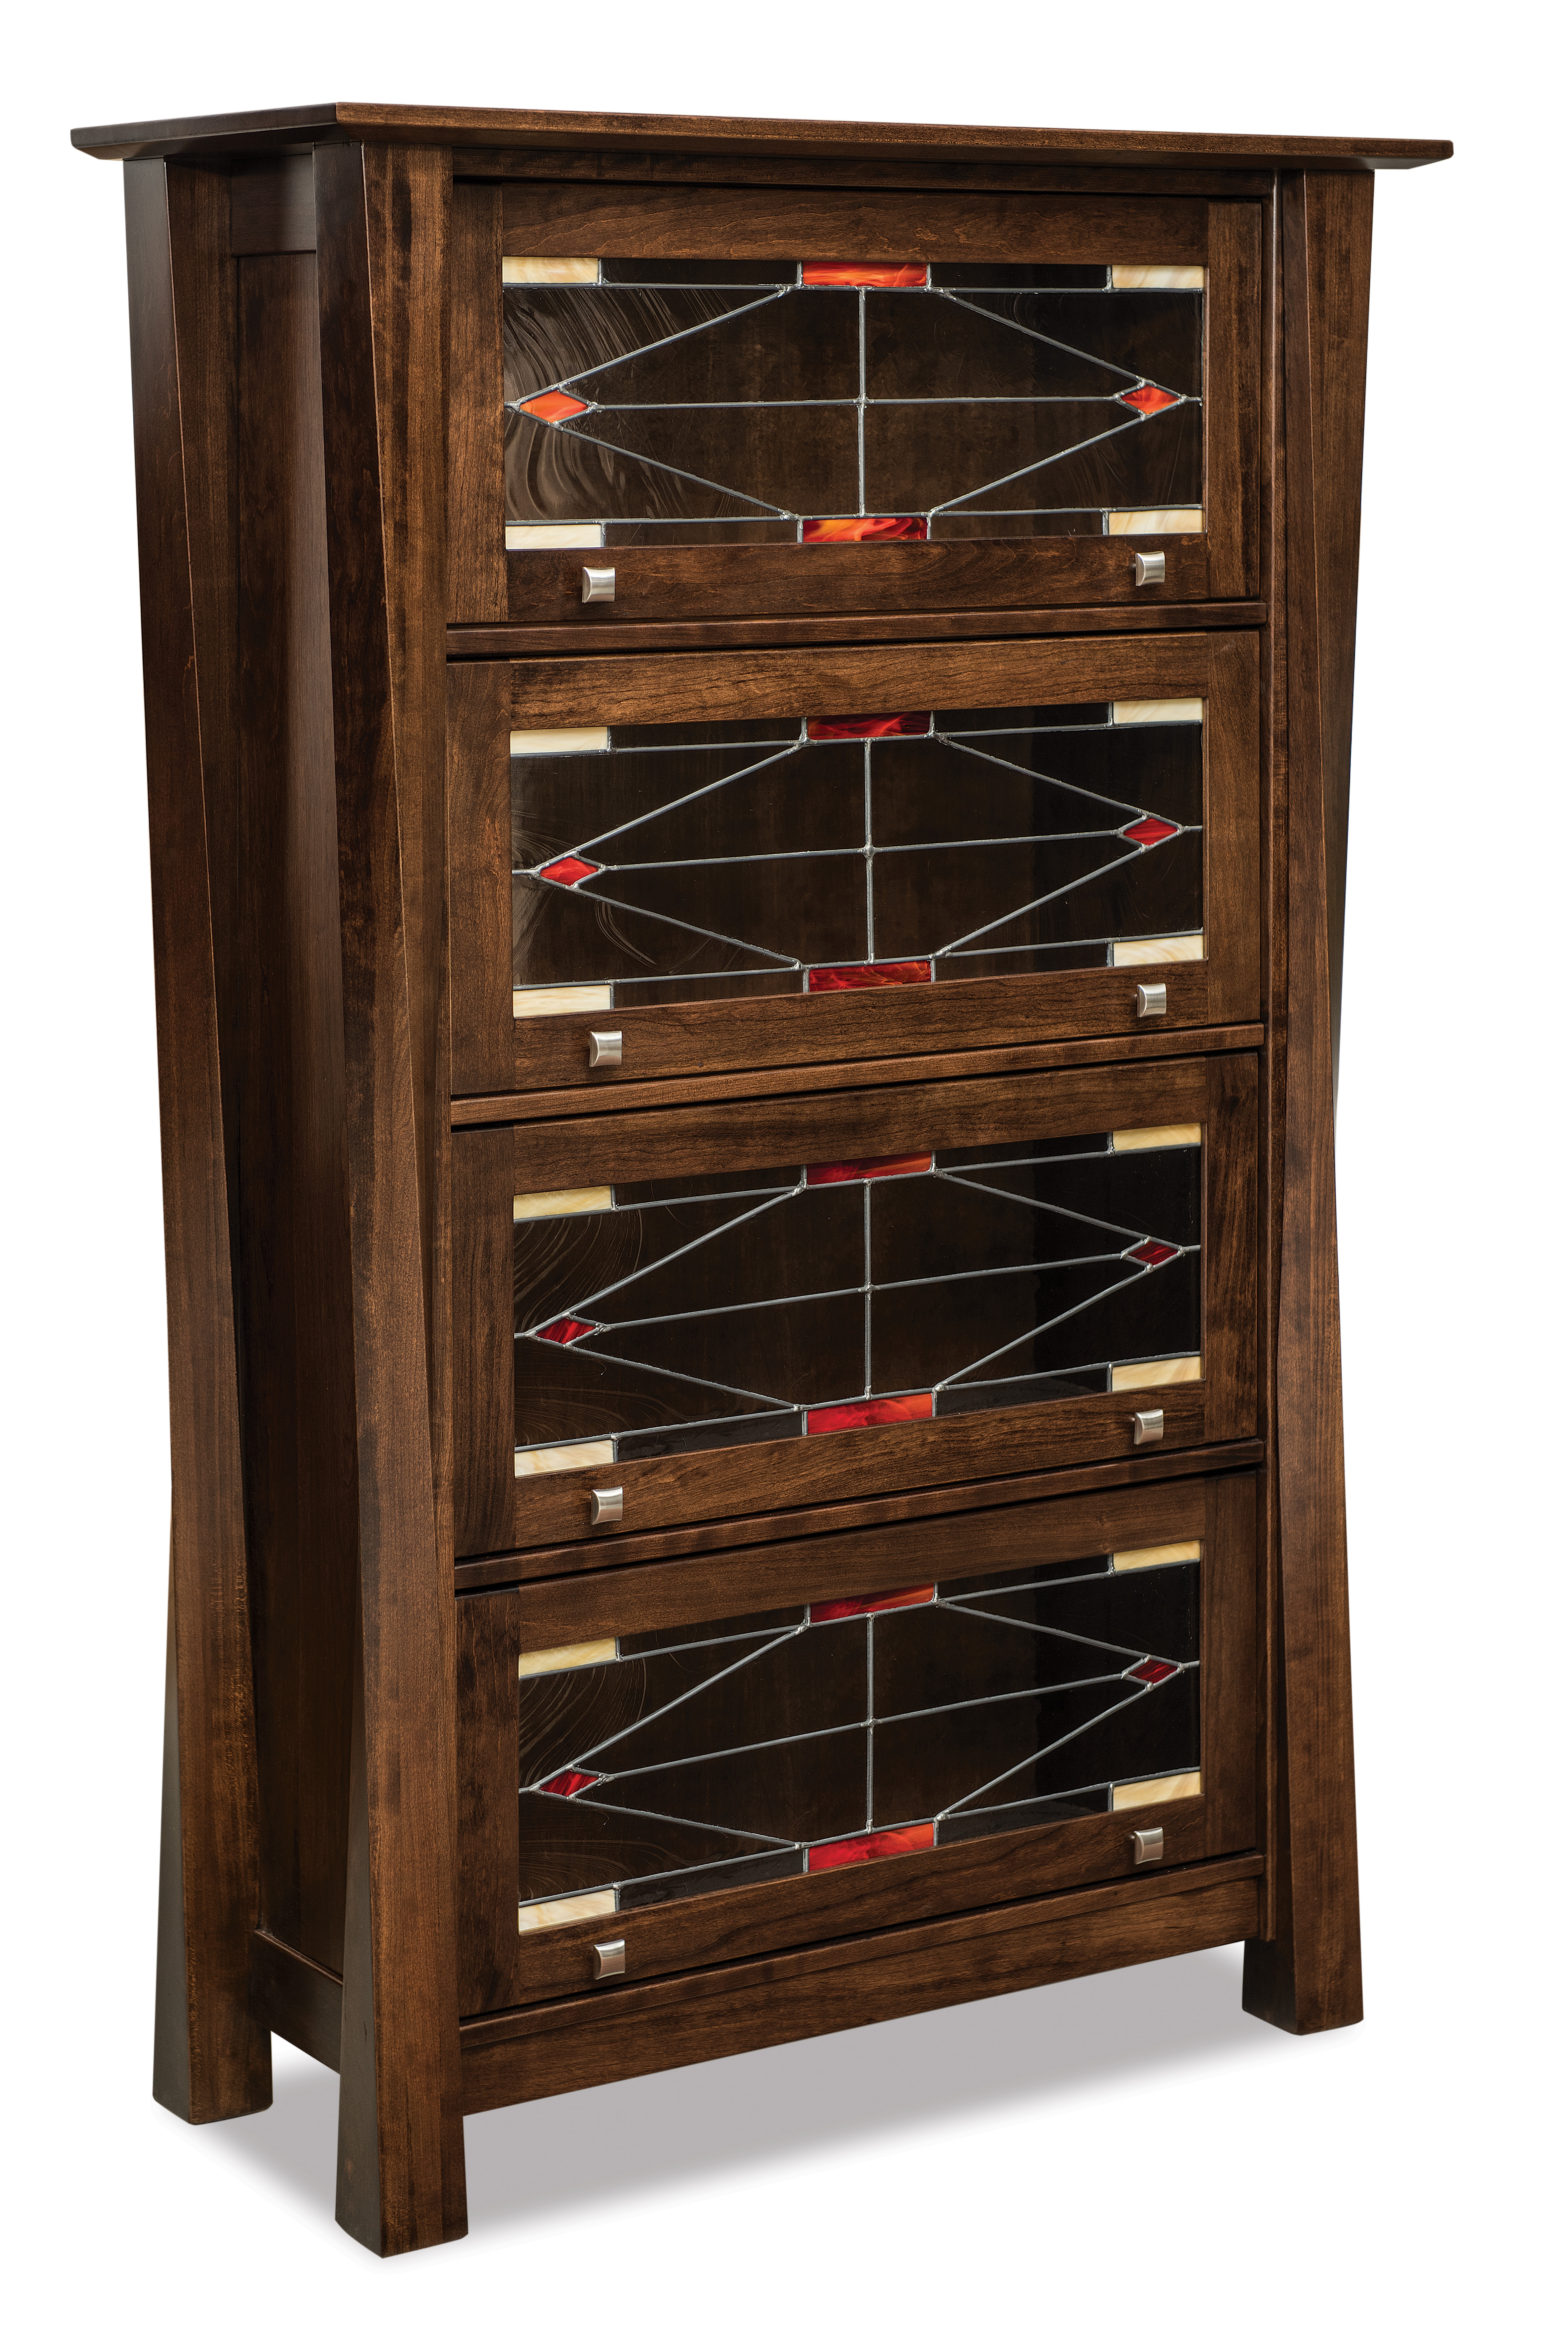 Lexington Arc Barrister Bookcase Product